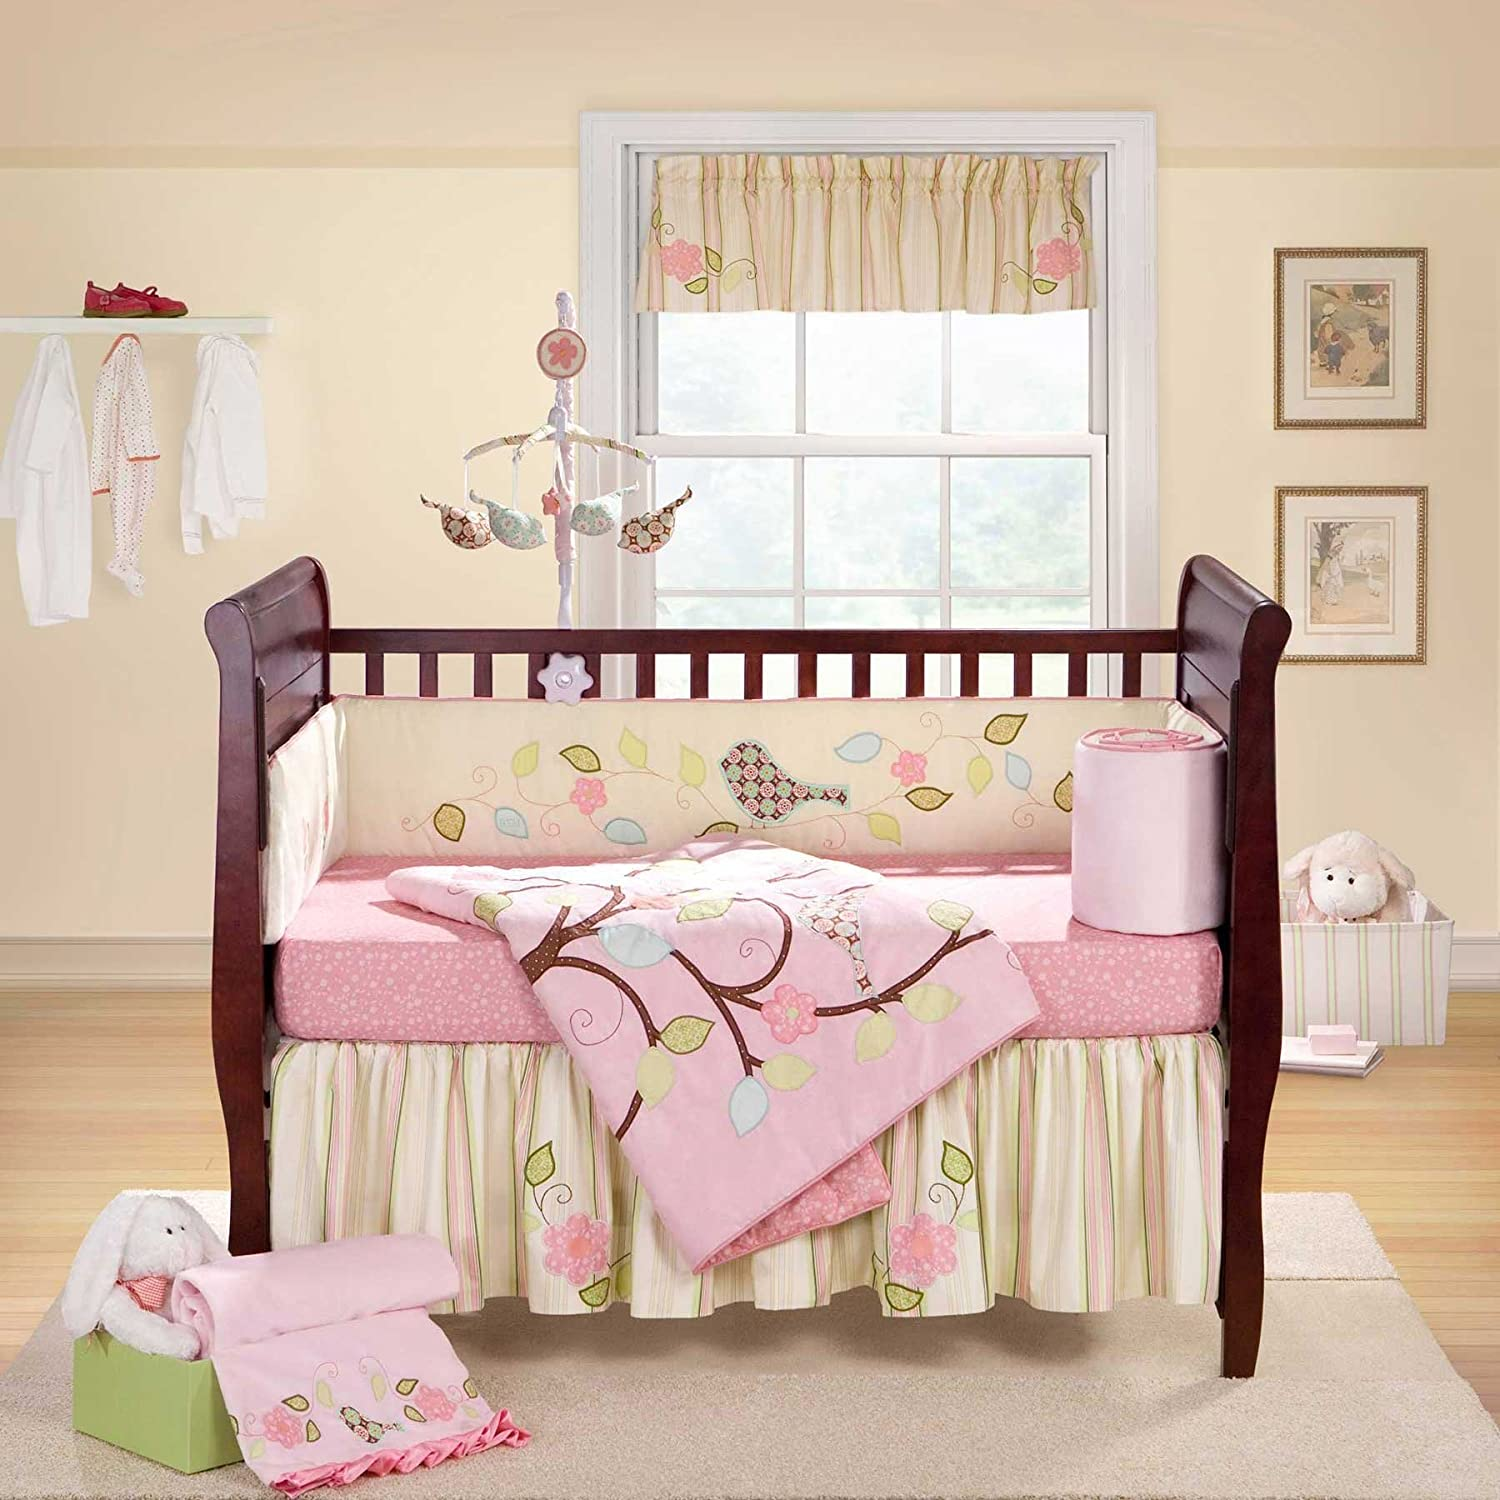 Amazoncom: girl crib bedding: Baby